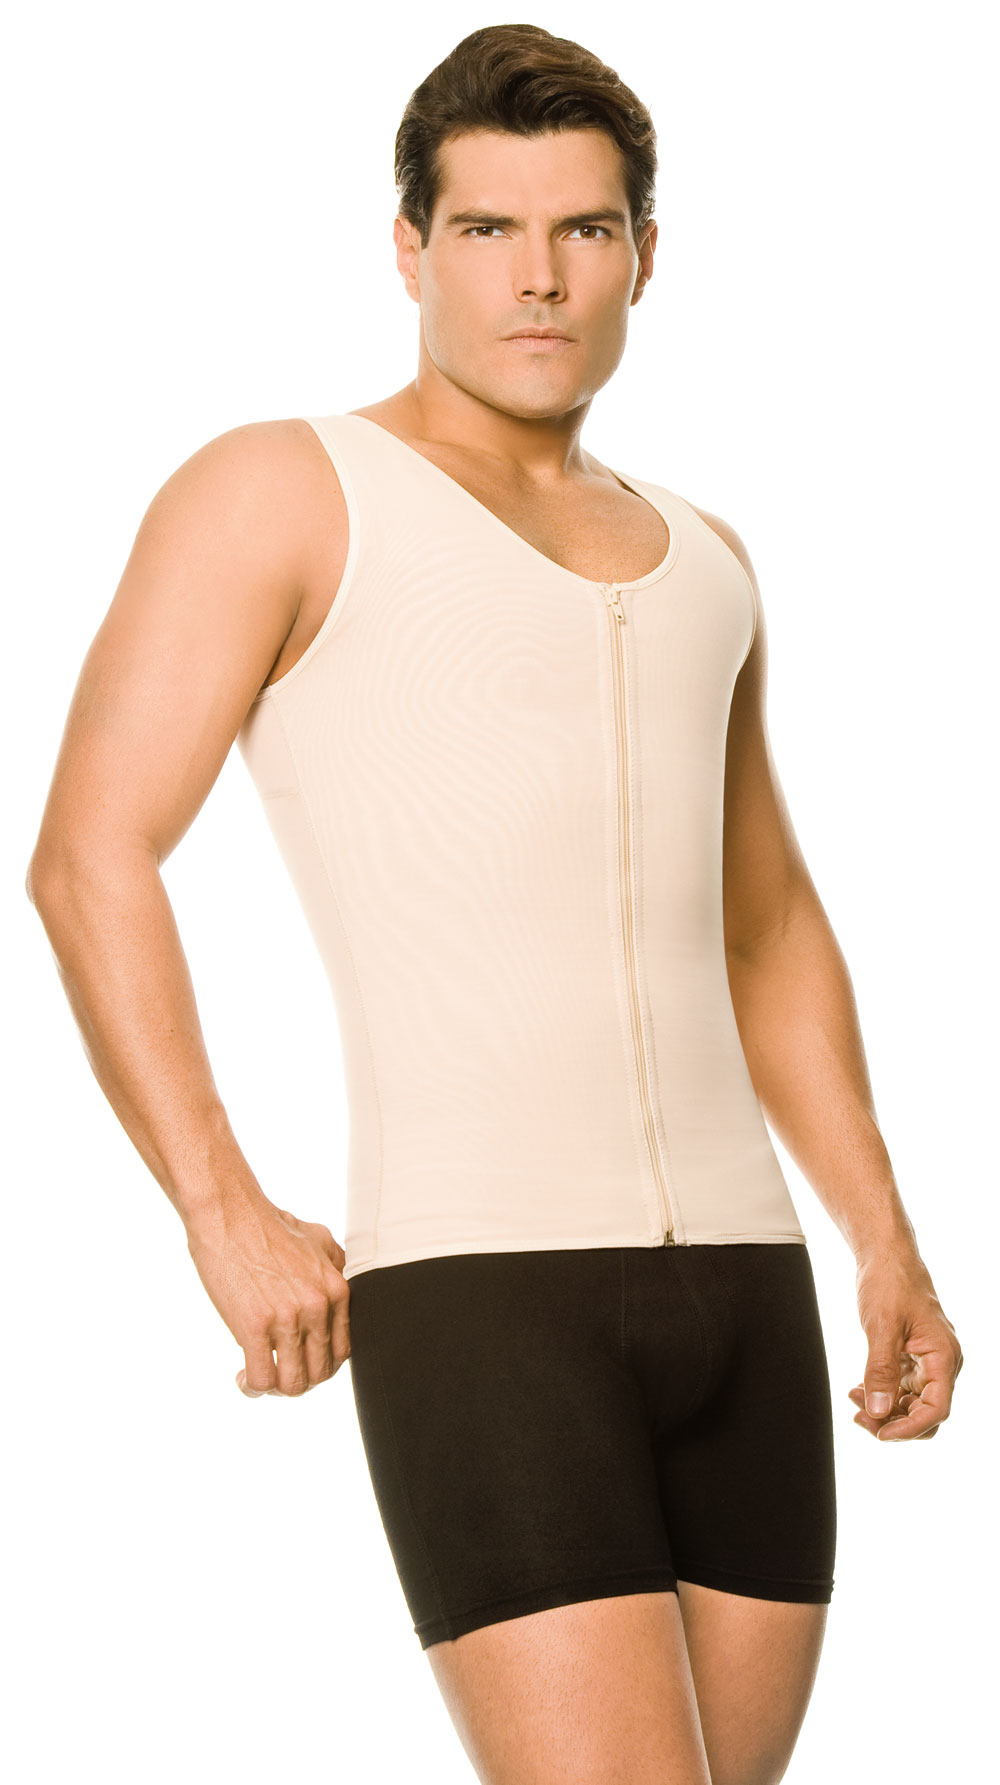 71be45d3f1 Men s Slimming Vest w Zipper